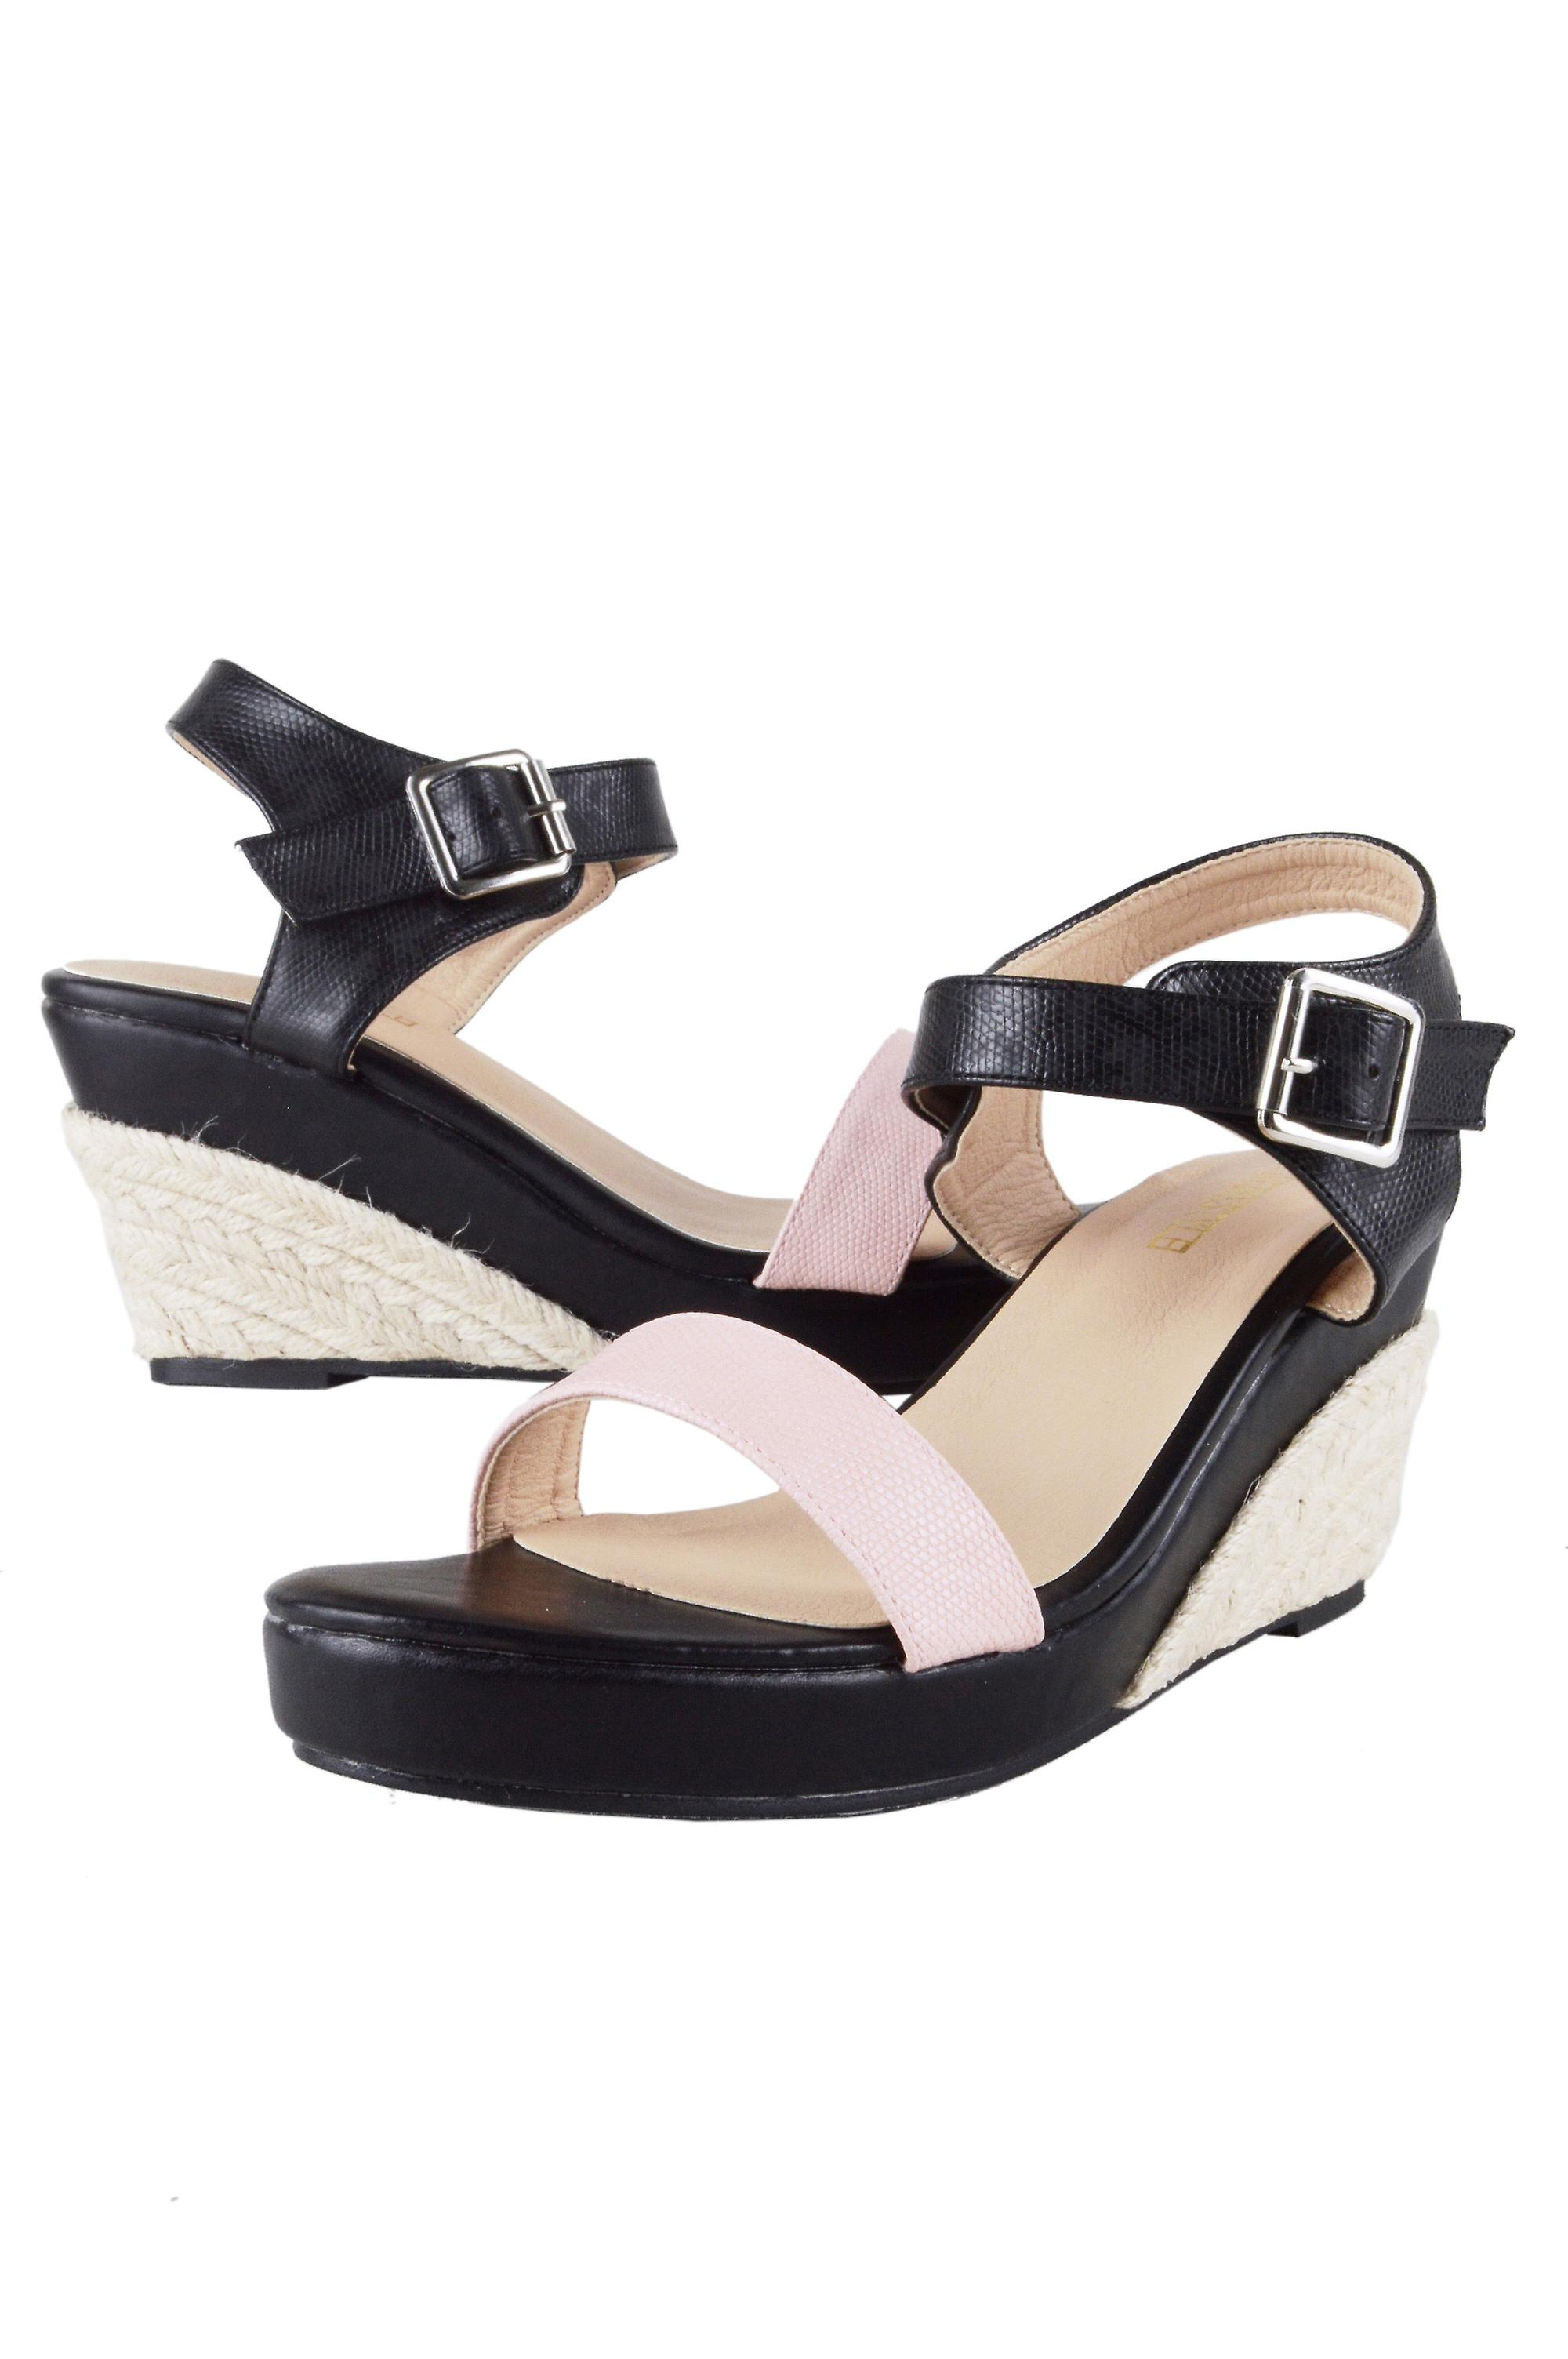 Lovemystyle Pink And Black Sandals With Rope Wedge